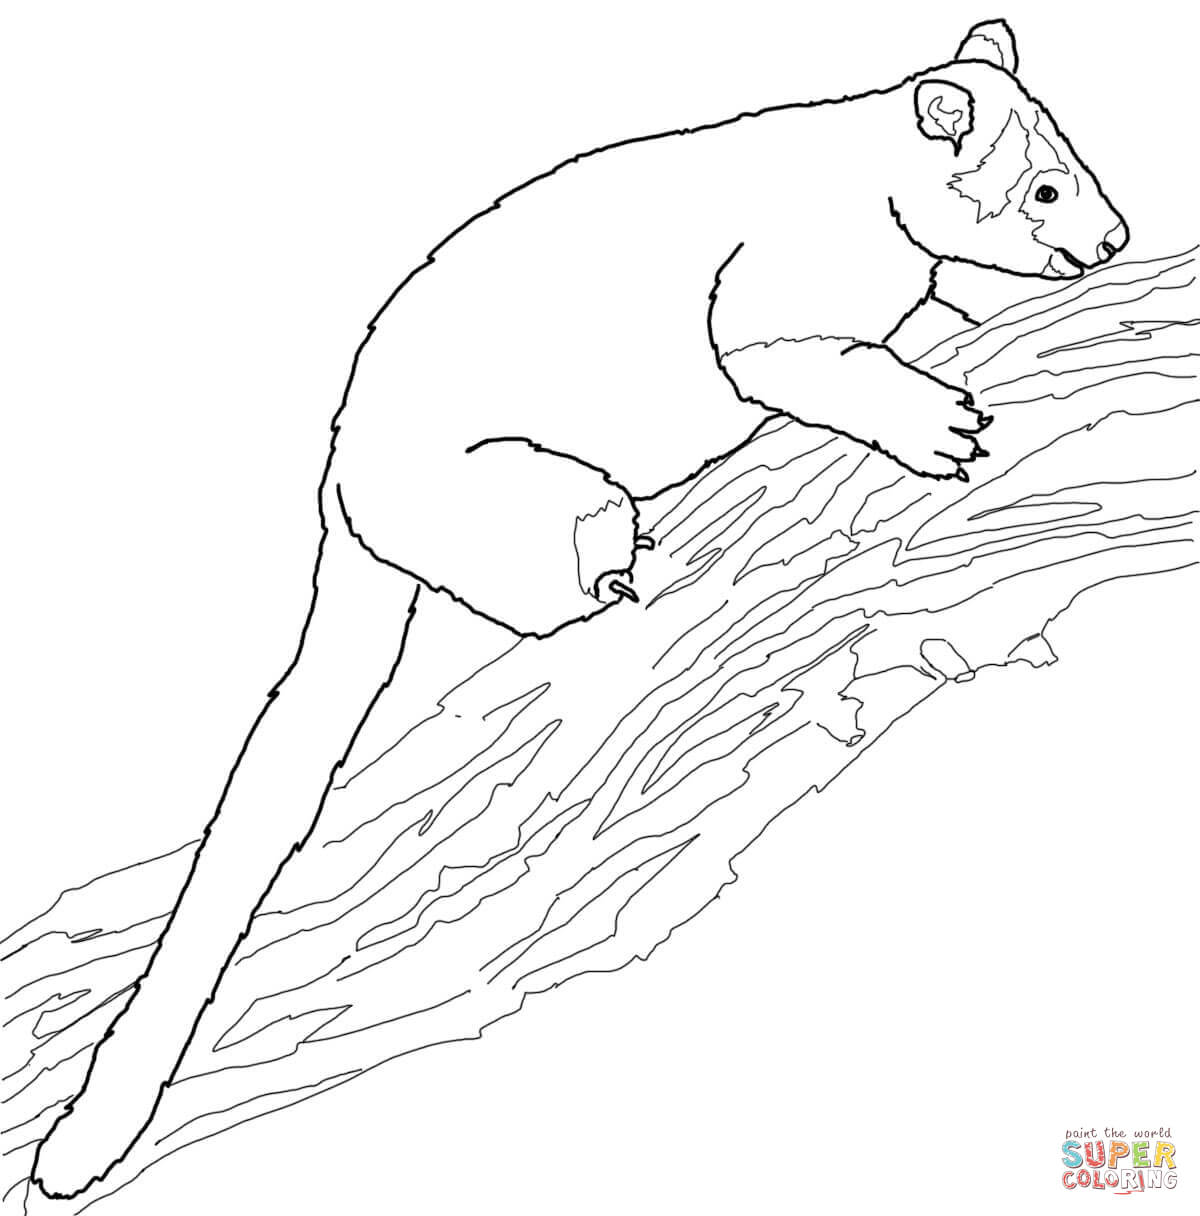 Tree Kangaroo clipart #10, Download drawings